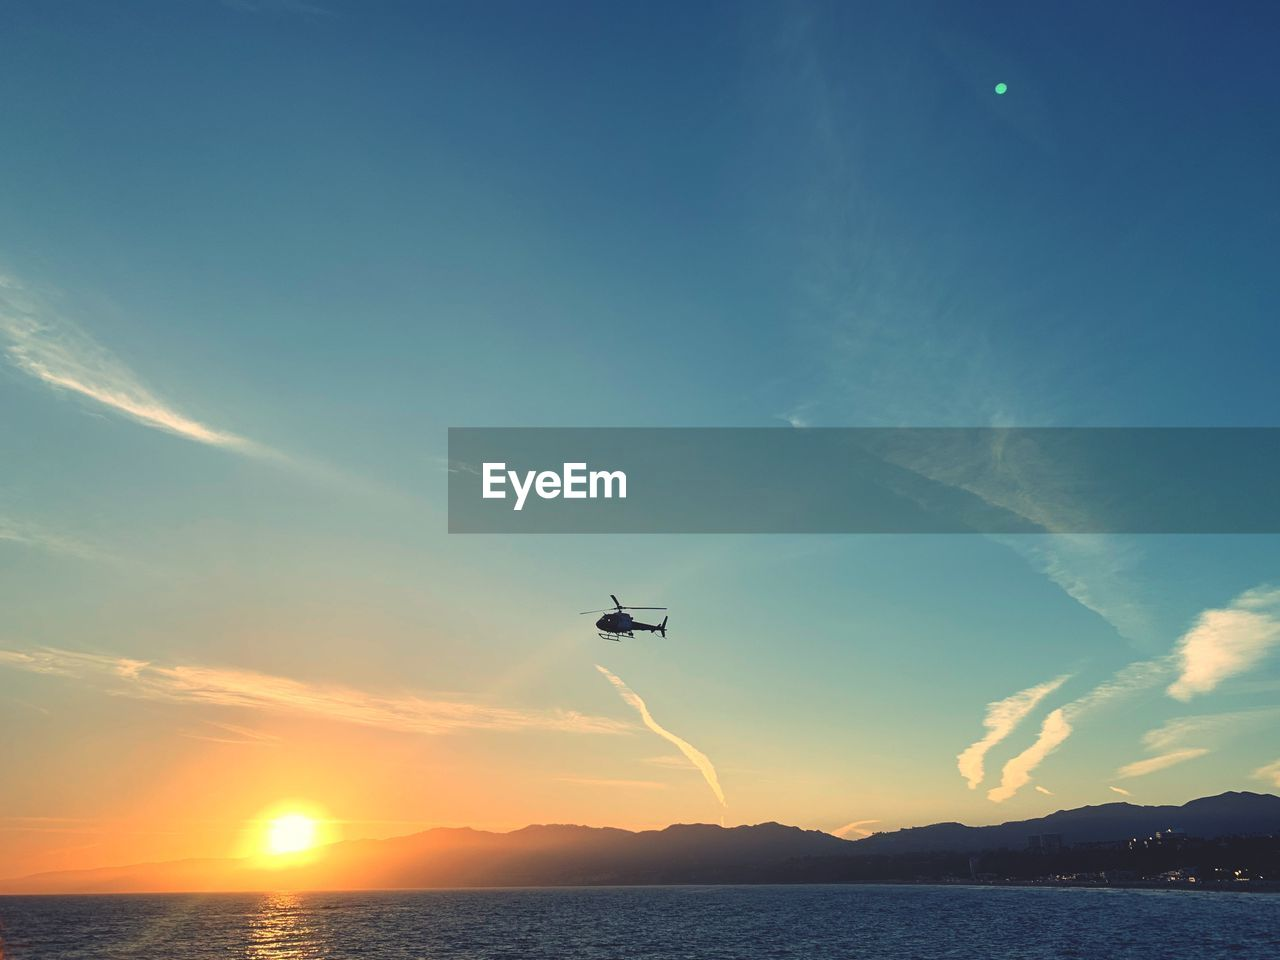 sky, flying, beauty in nature, scenics - nature, water, nature, sea, mid-air, cloud - sky, tranquility, sunset, tranquil scene, mountain, non-urban scene, mode of transportation, no people, air vehicle, sunlight, idyllic, outdoors